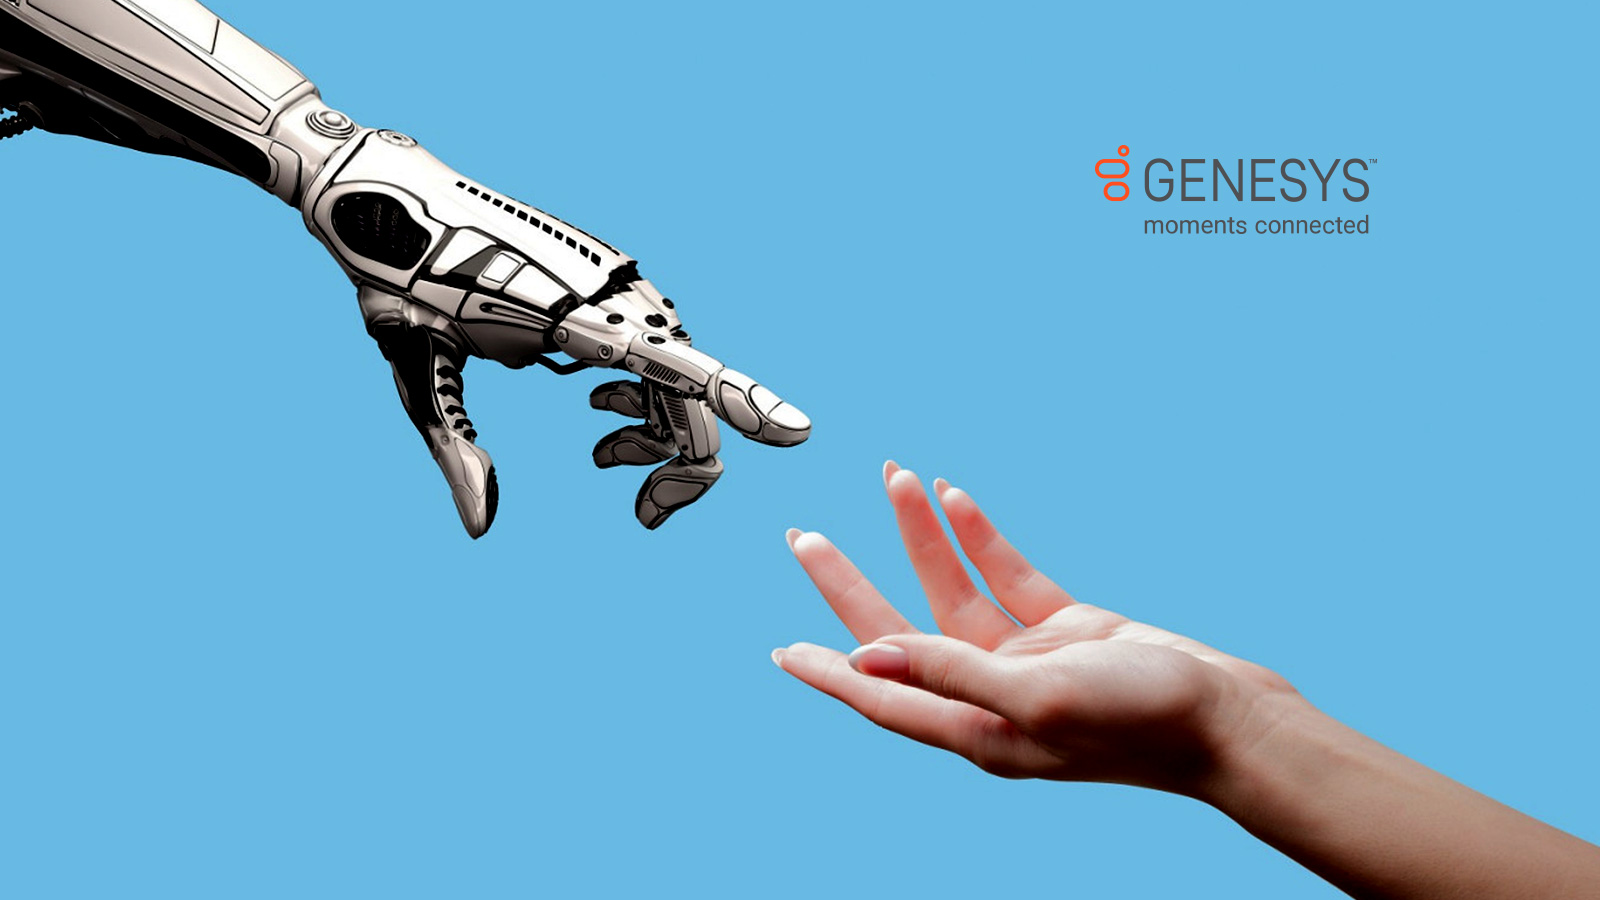 Genesys AI Unlocks Better, Faster, Hyper-Personalized Engagement